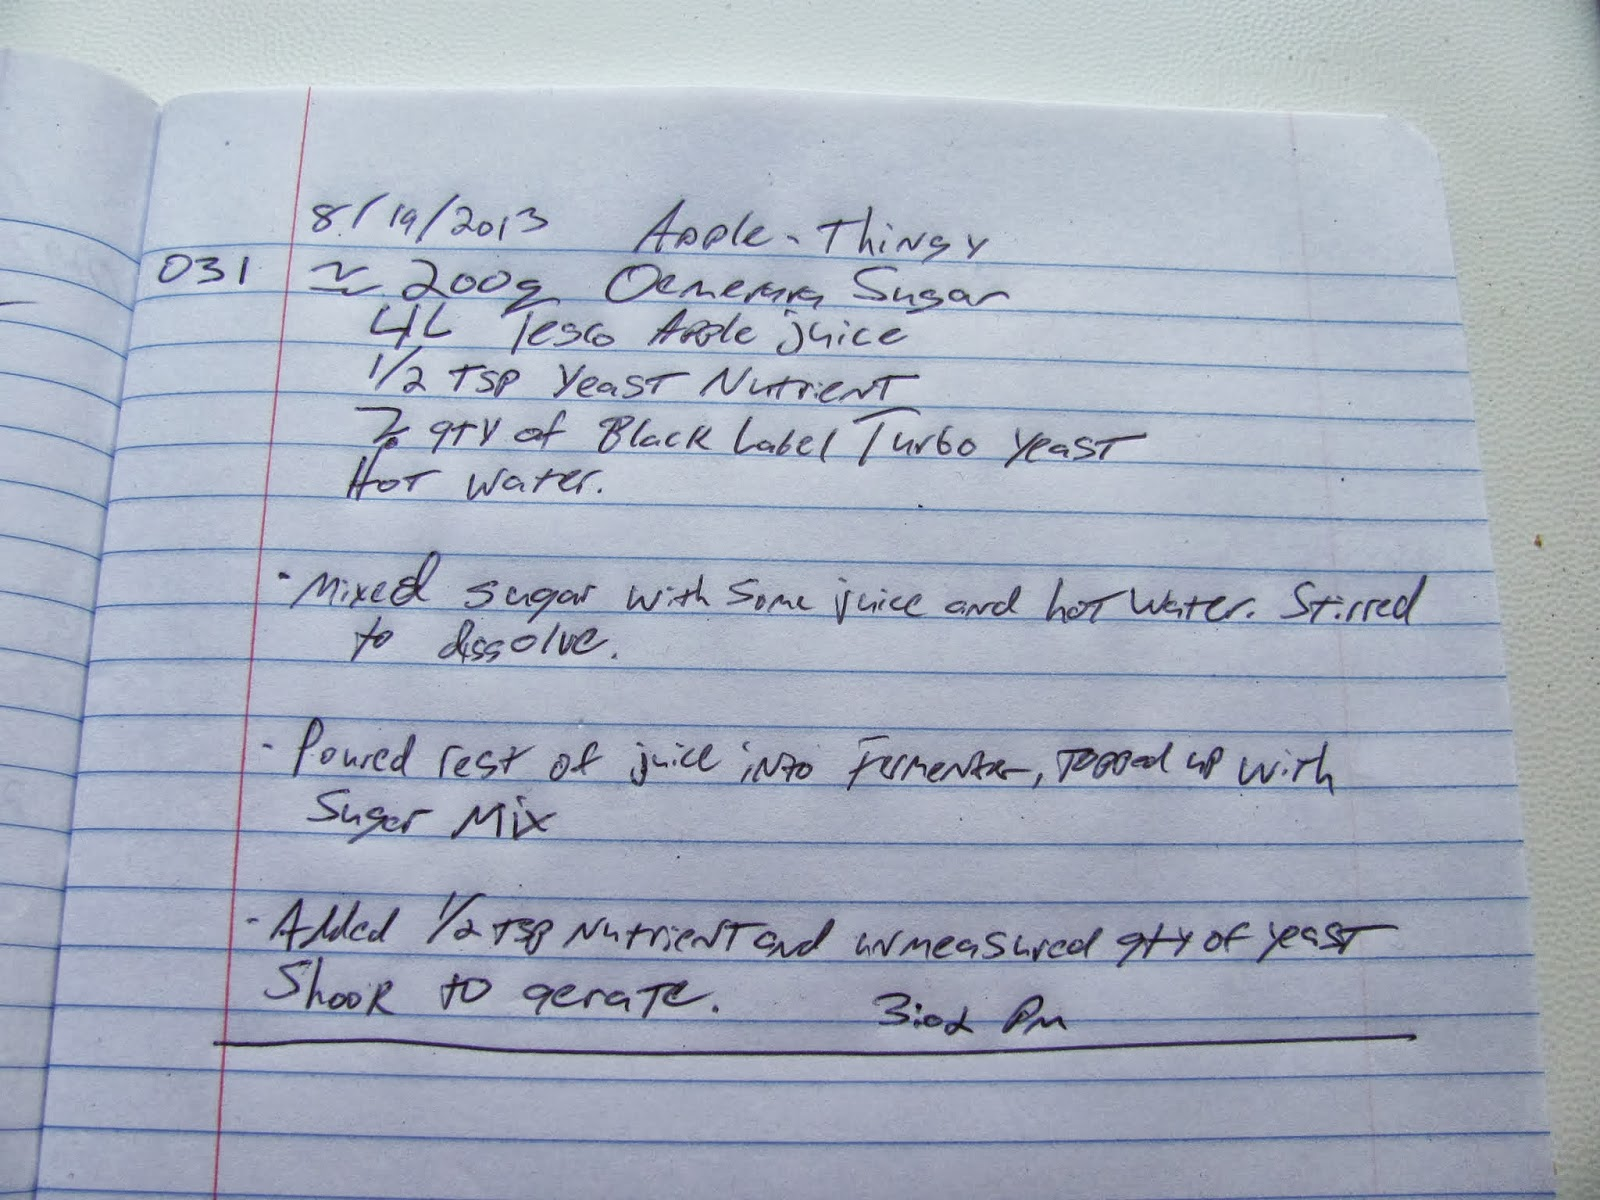 Page of brewing log book with the details of the cider batch